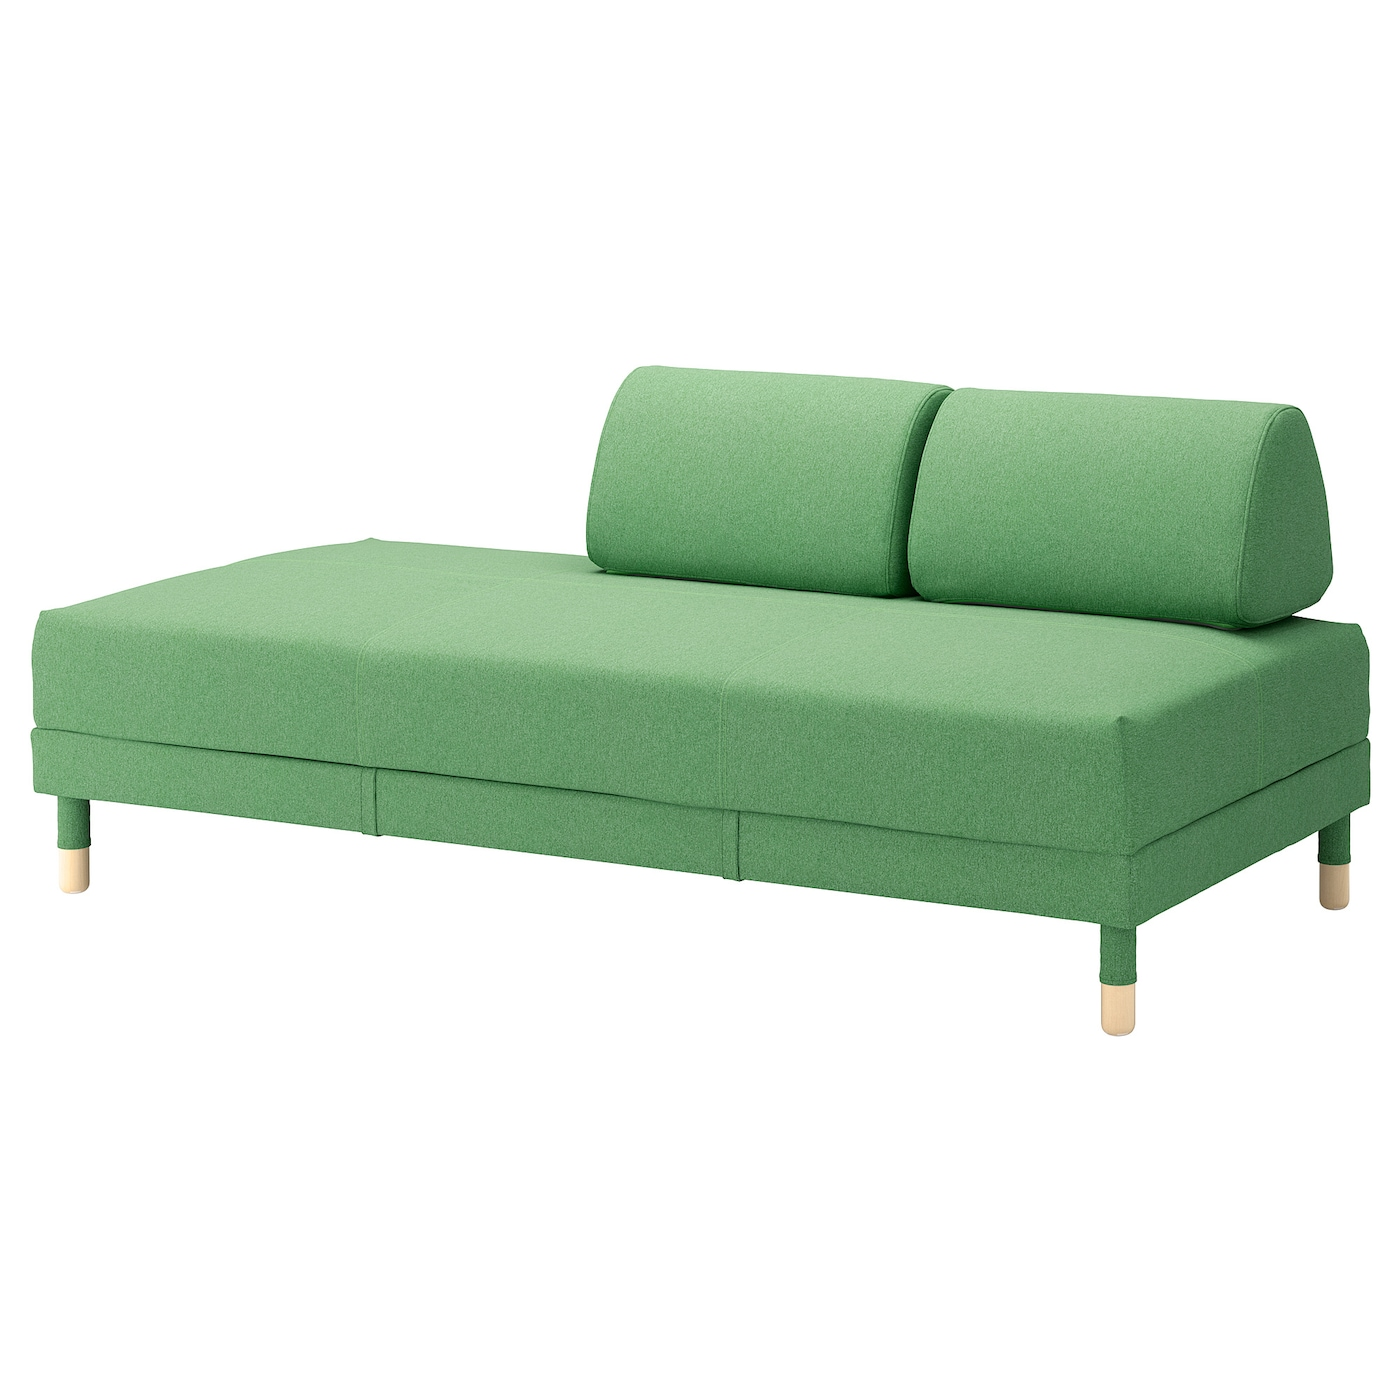 flottebo sofa bed lysed green 90 cm ikea. Black Bedroom Furniture Sets. Home Design Ideas